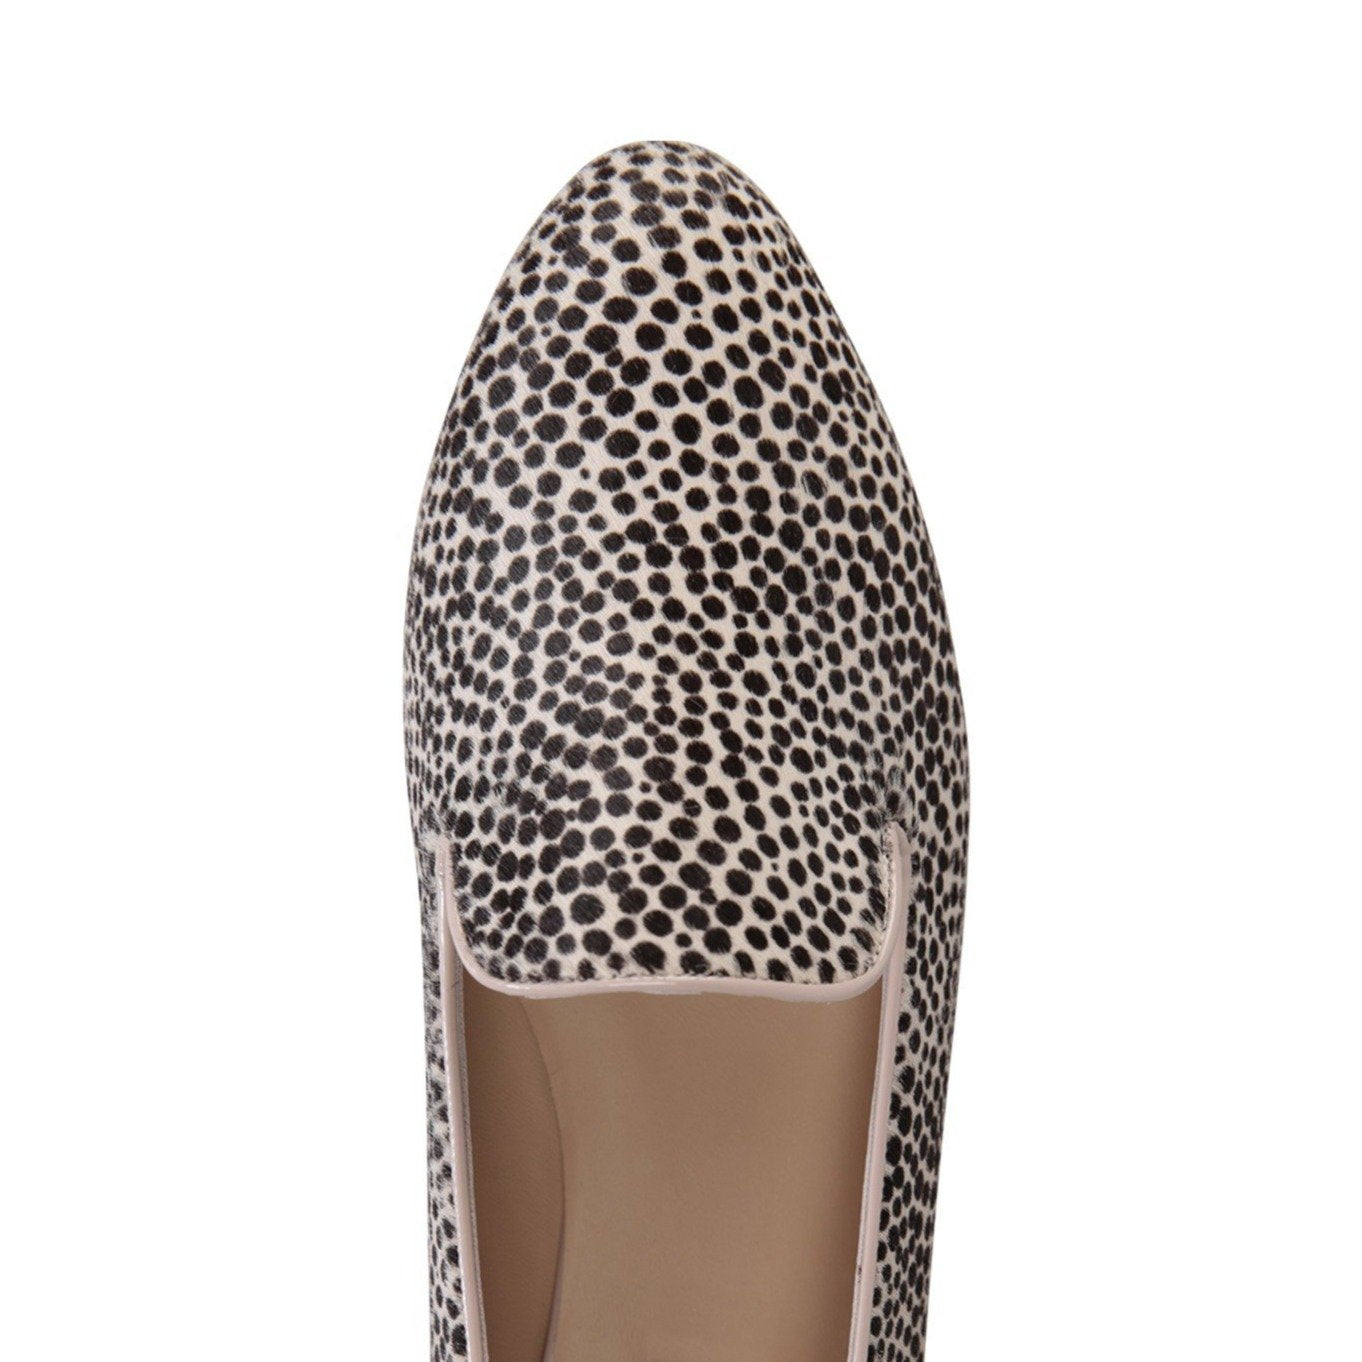 RAVENNA - Calf Hair Panna Cheetah + Nude Trim, VIAJIYU - Women's Hand Made Sustainable Luxury Shoes. Made in Italy. Made to Order.